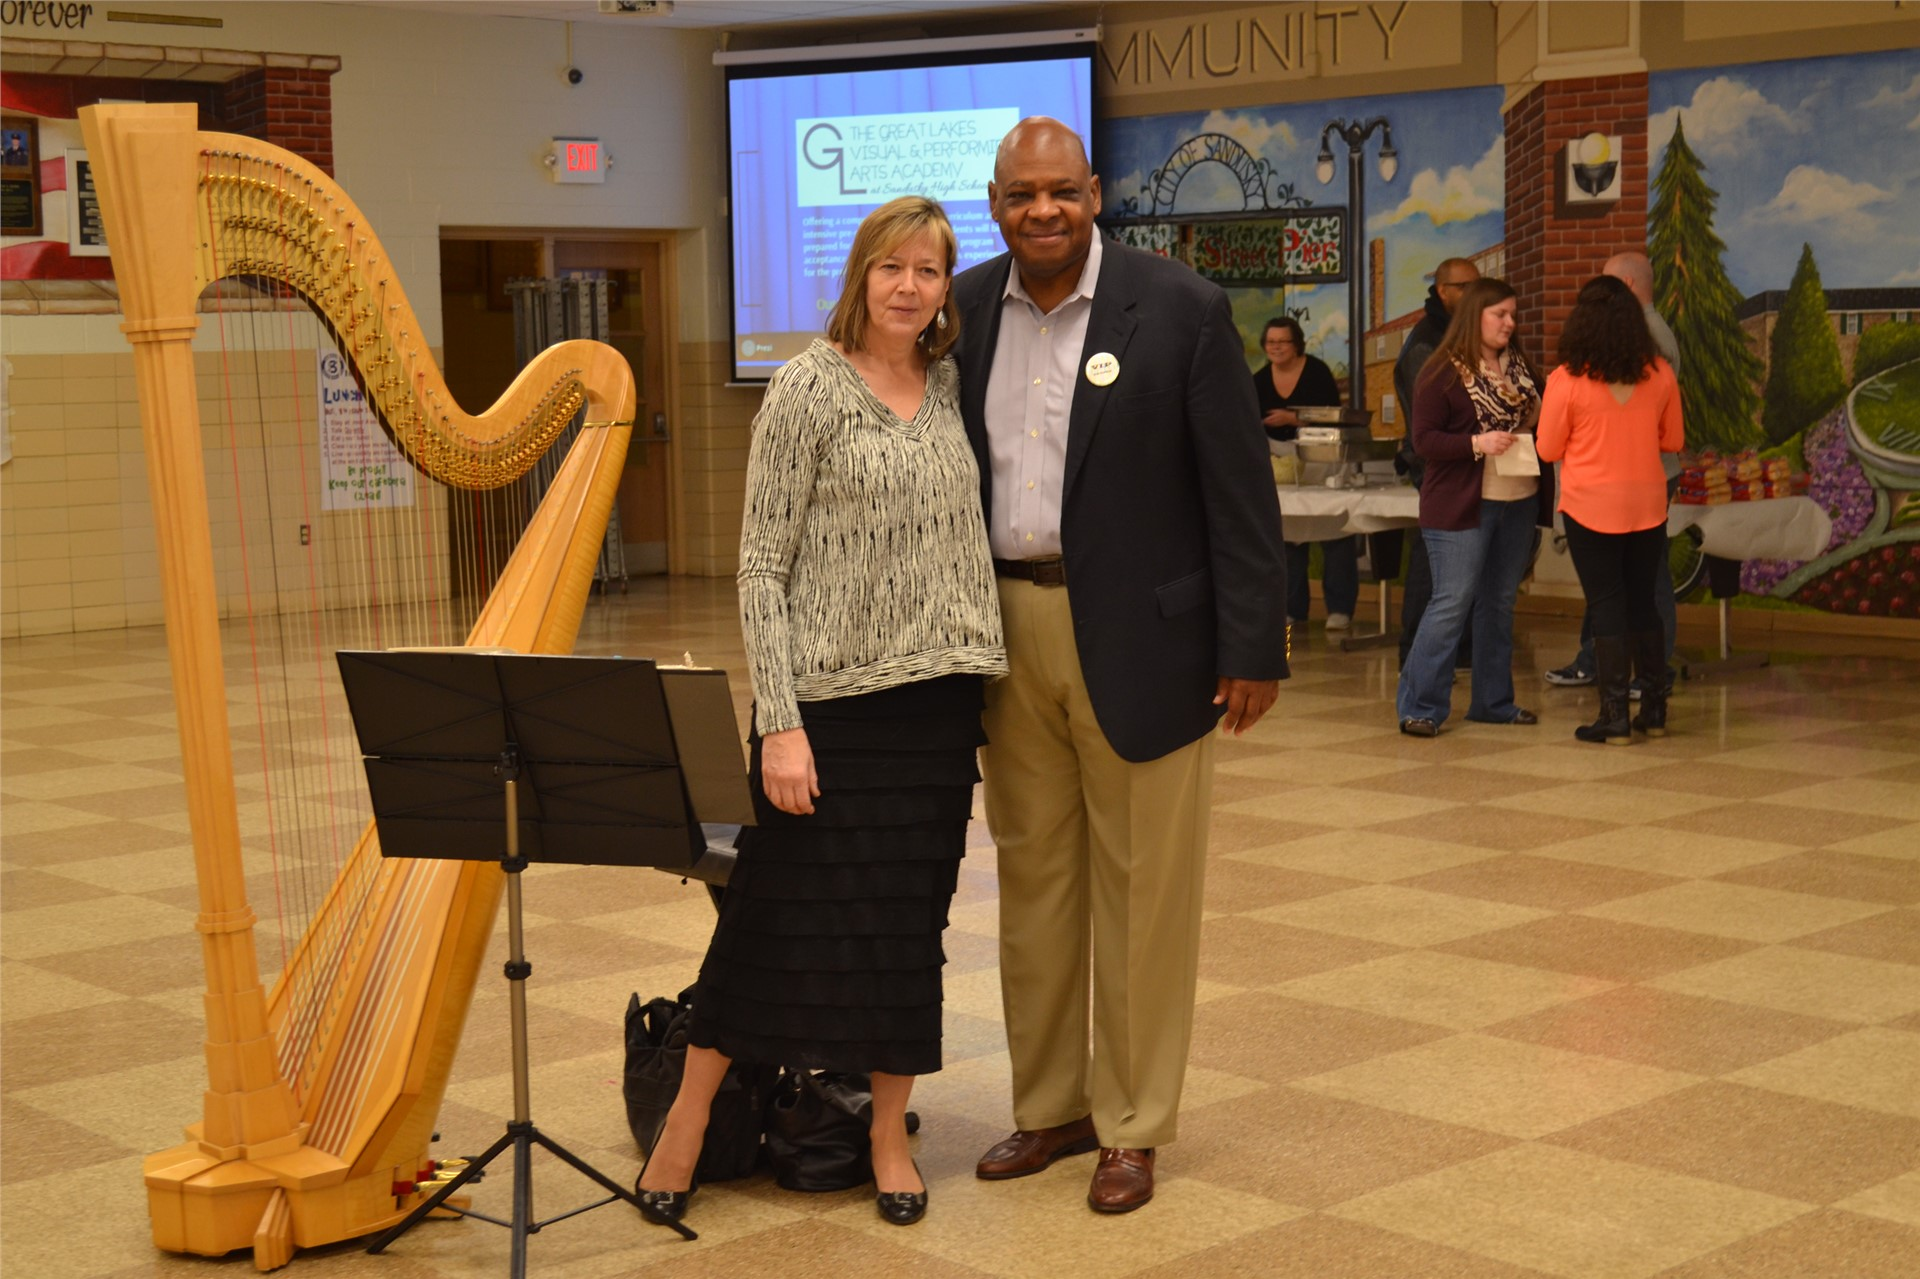 Photo of Dr. Sanders and a harpist